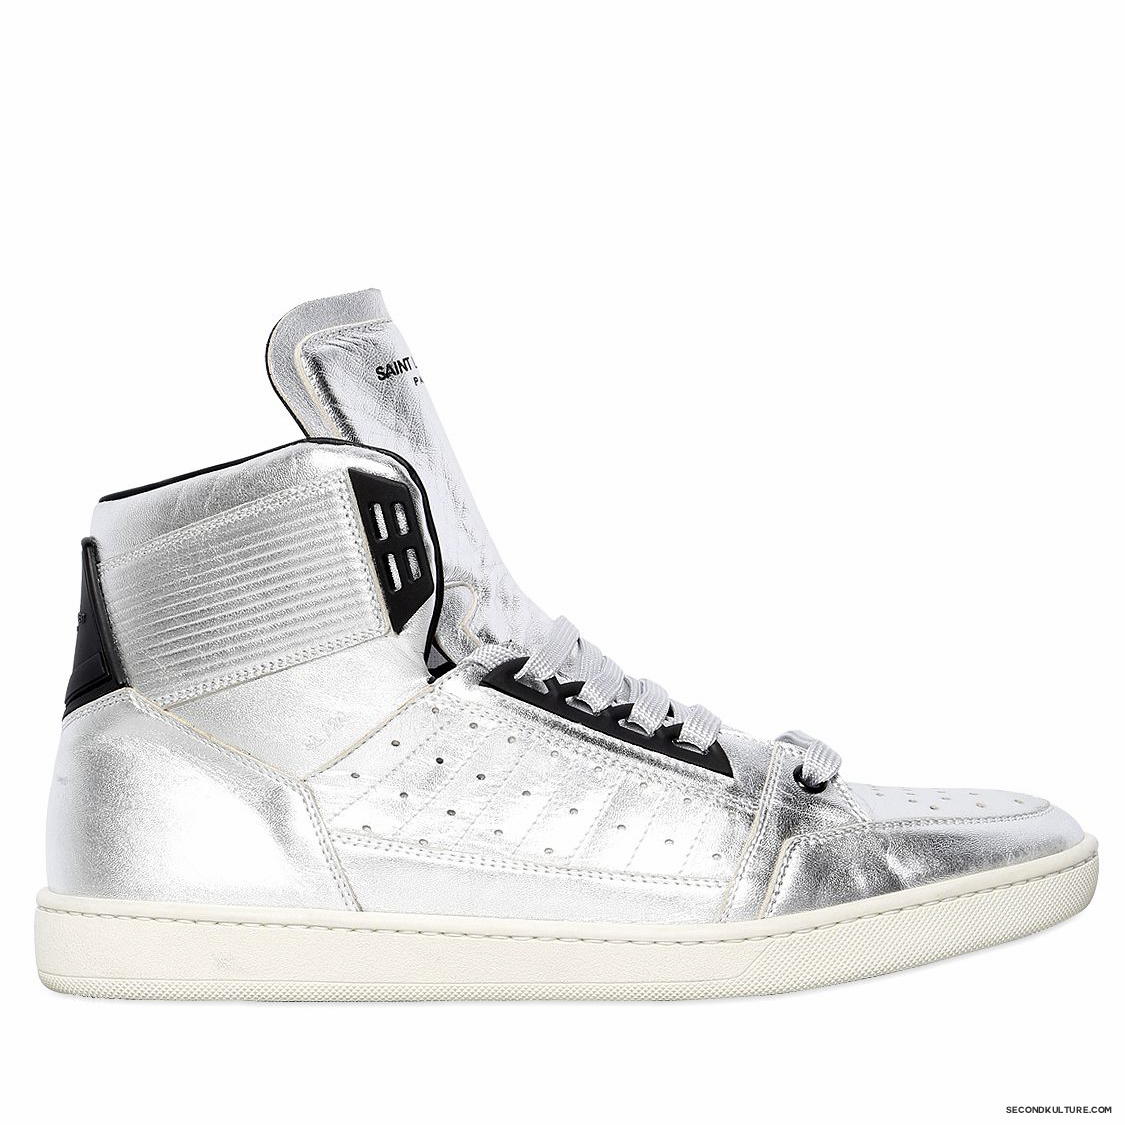 Saint-Laurent-Silver-Lame-Leather-High-Top-Sneakers-Fall-Winter-2015-1